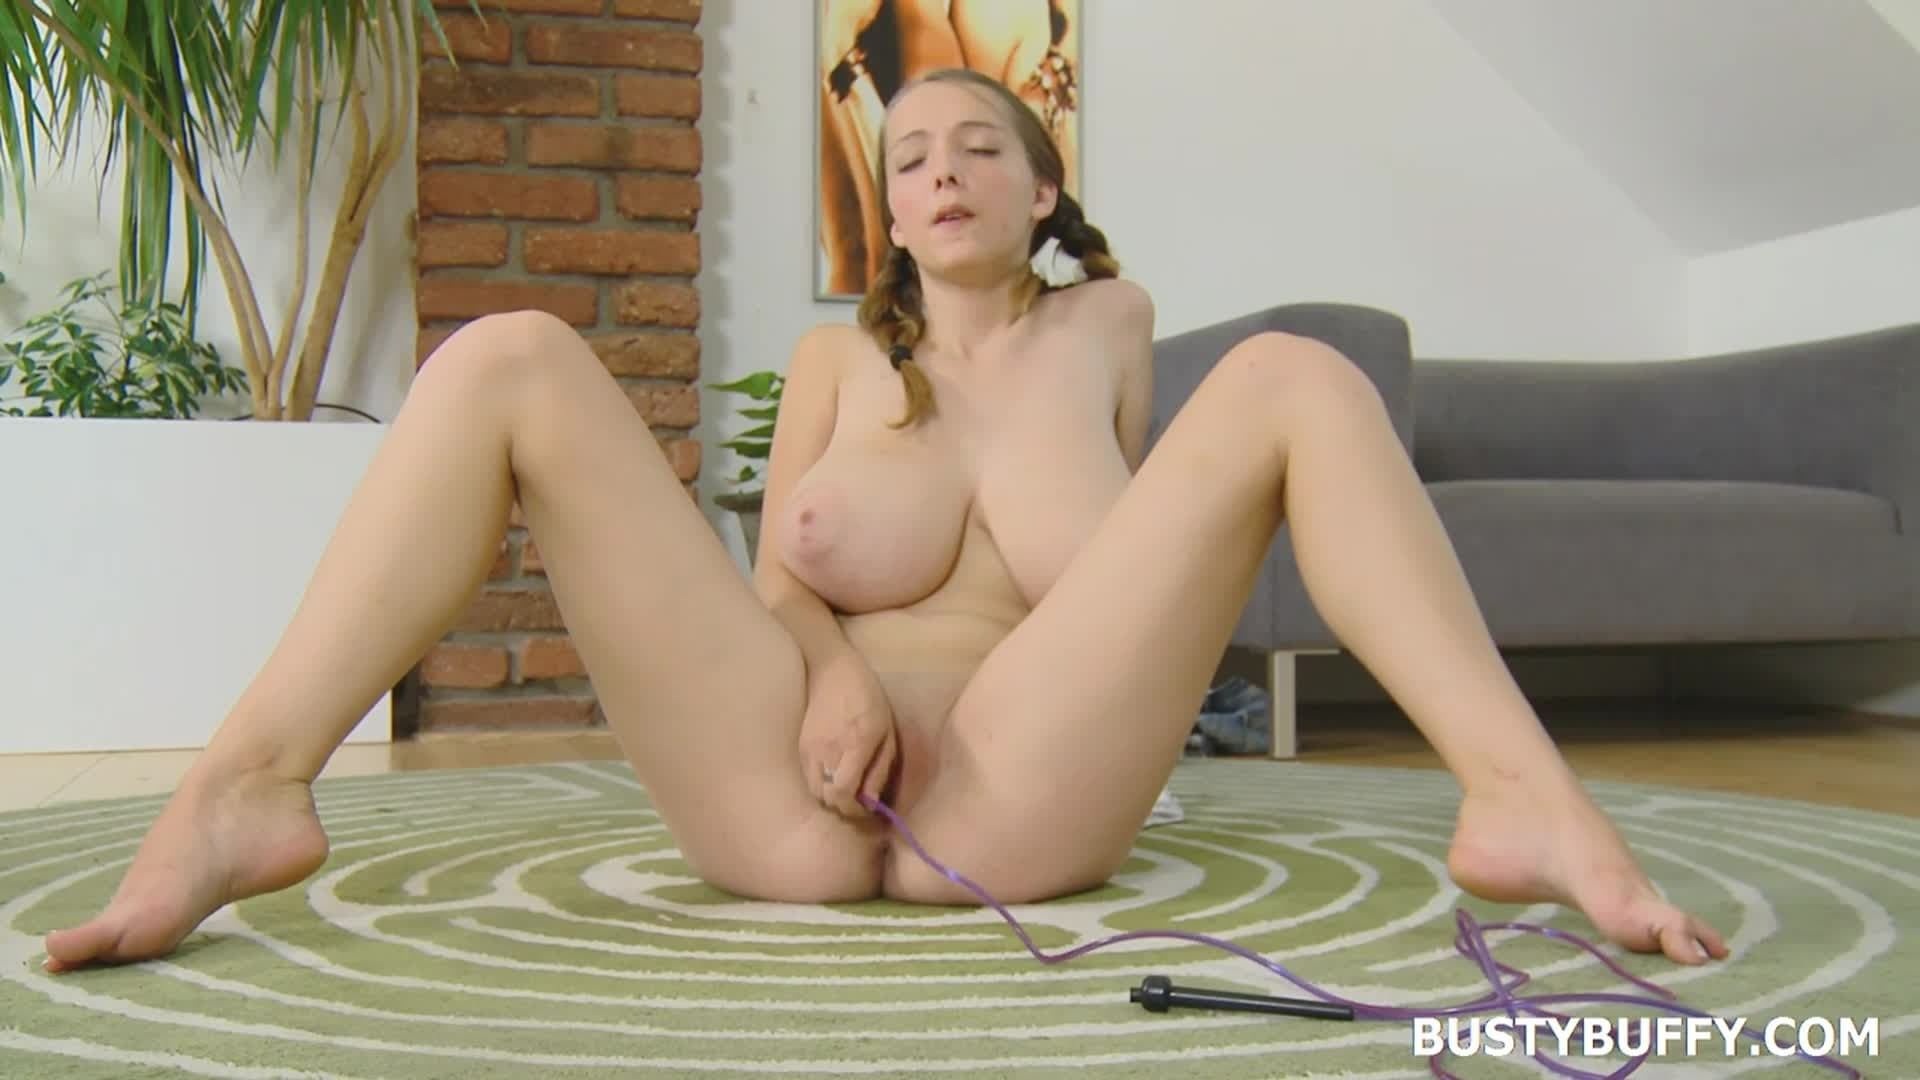 Busty buffy bisexual strapon